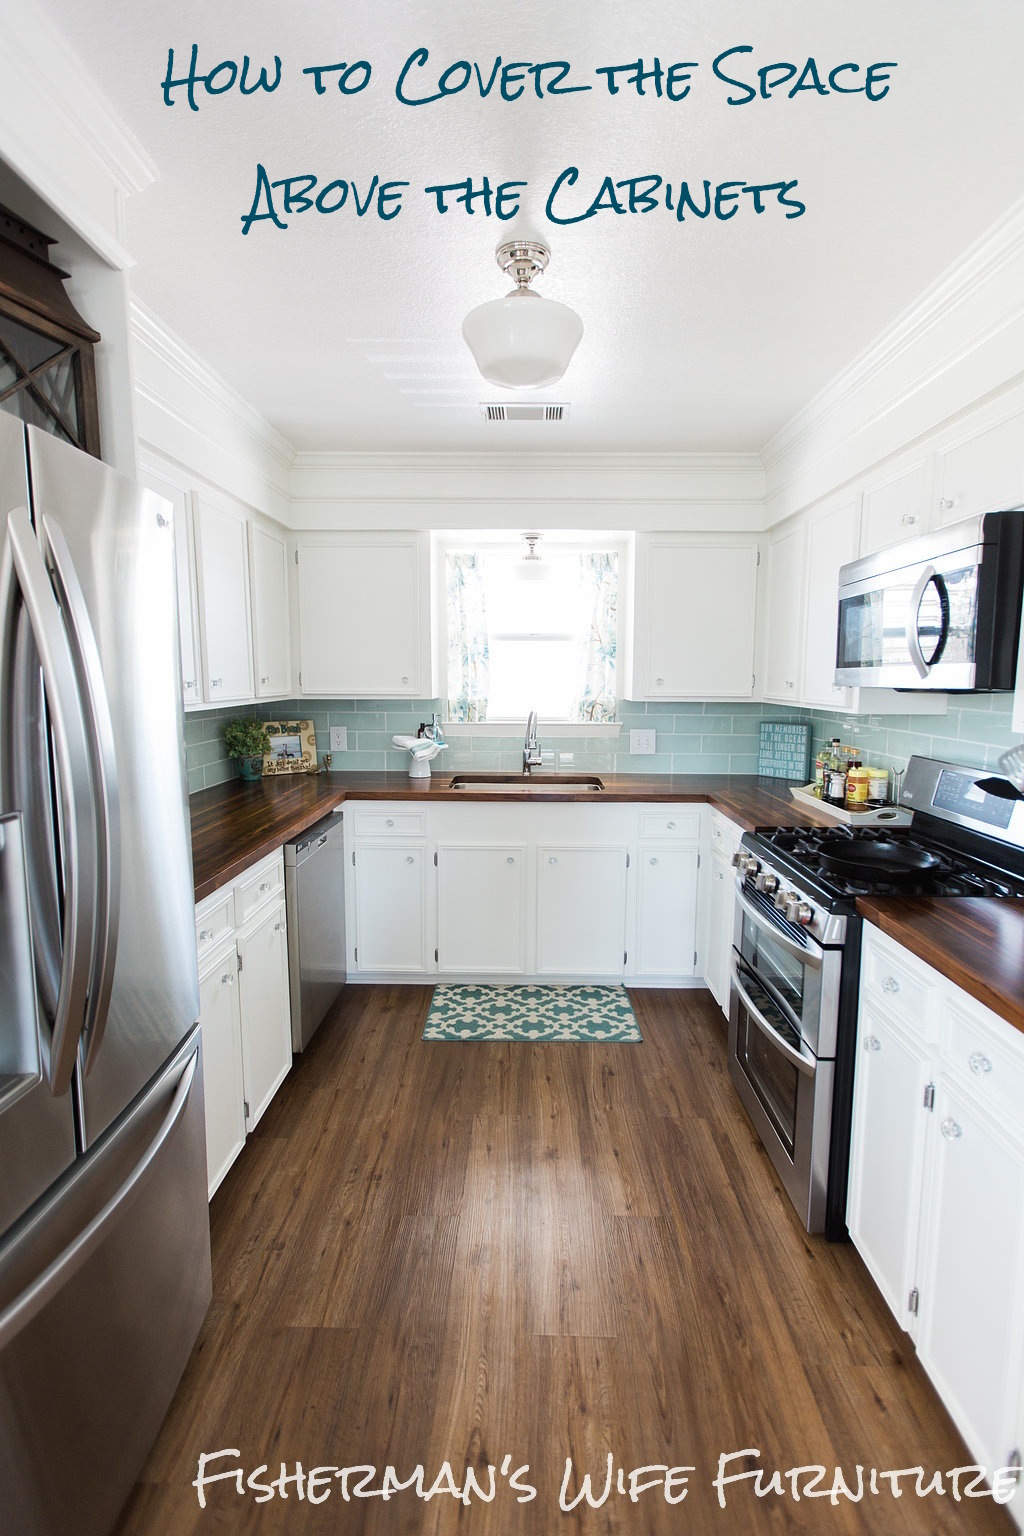 Spacing Between Kitchen Cabinets Fisherman's Wife Furniture: Covering Fur Down - The Space